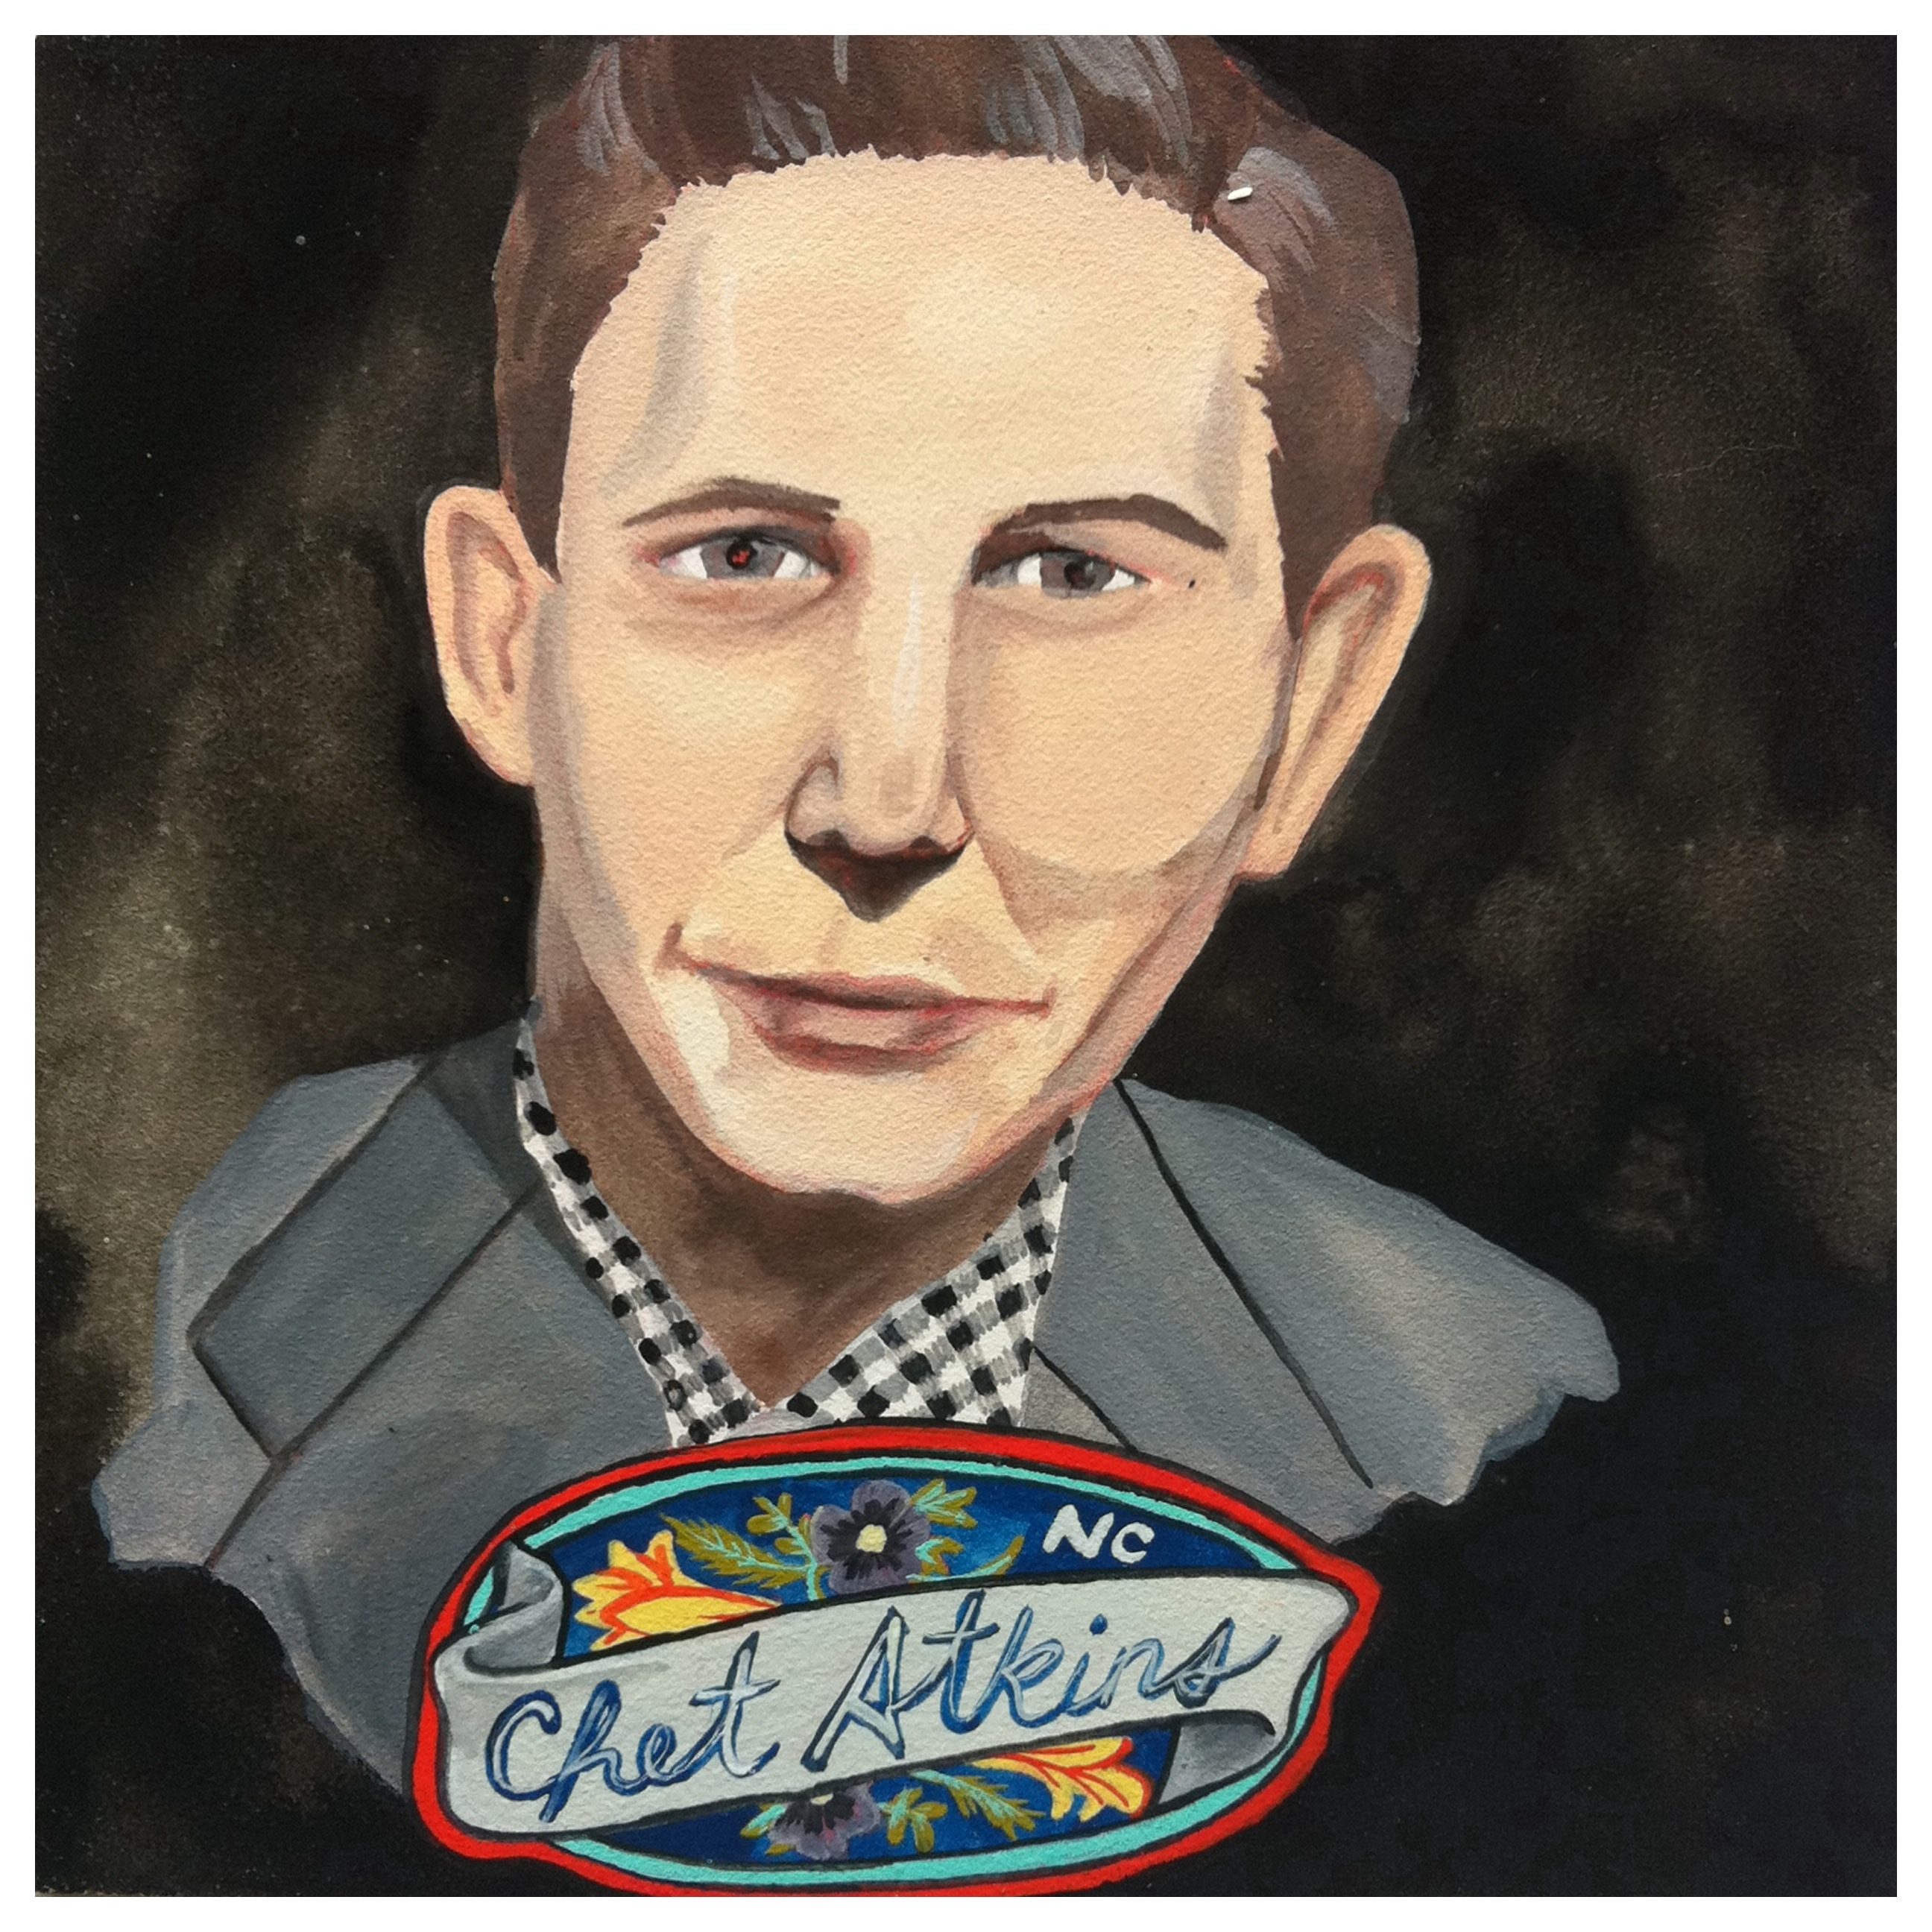 100 Southerners portraits by Lydia Walls: Chet Atkins